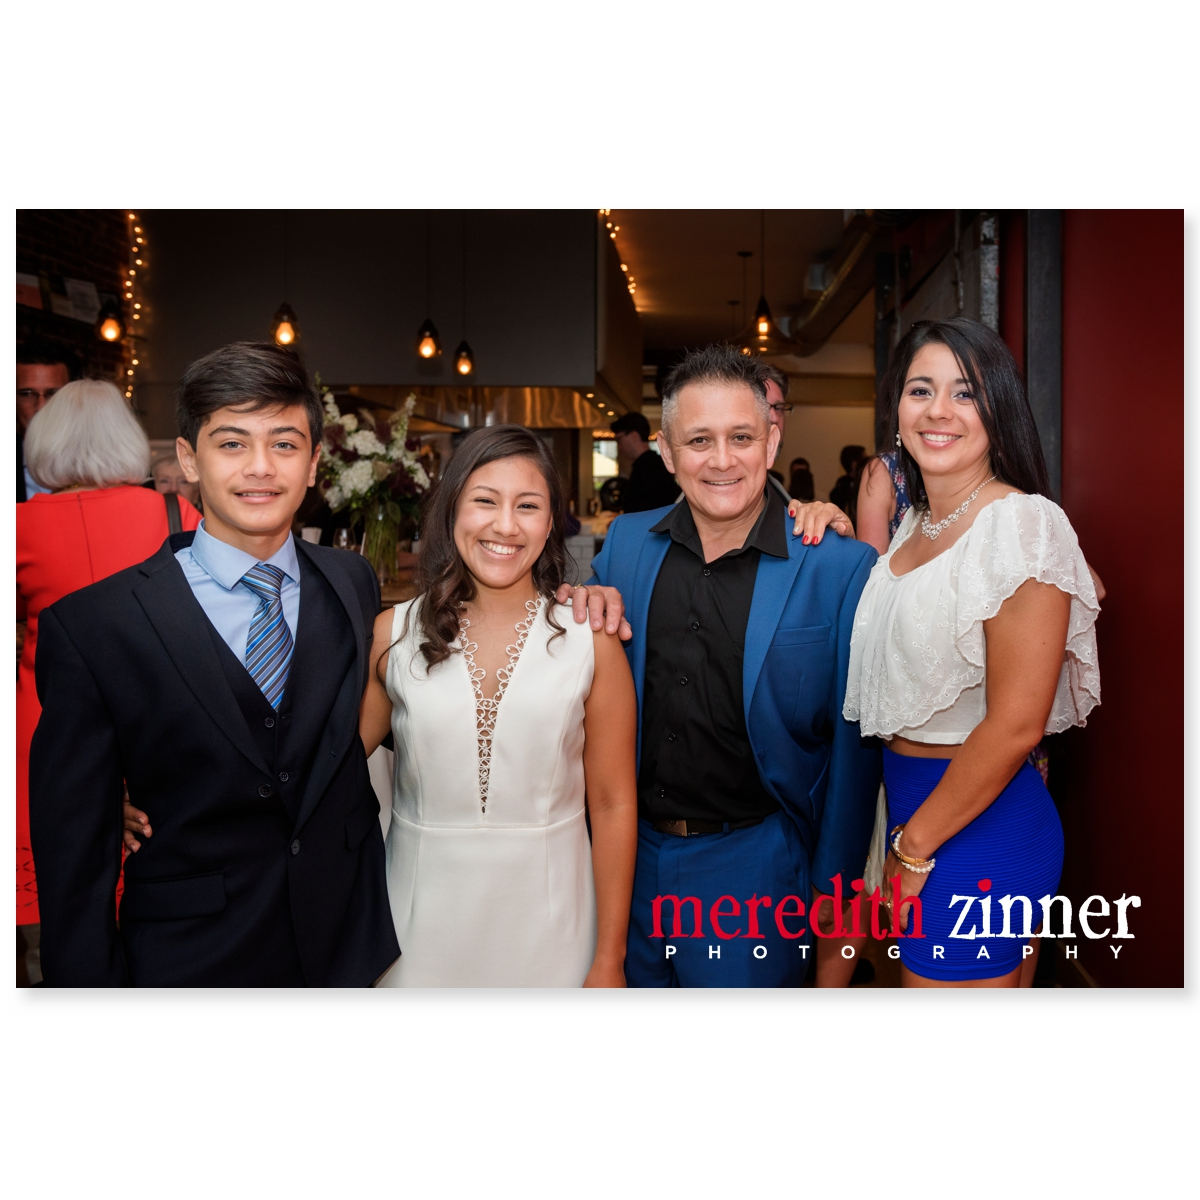 Meredith_Zinner_Photography_StilesCelebration_0087